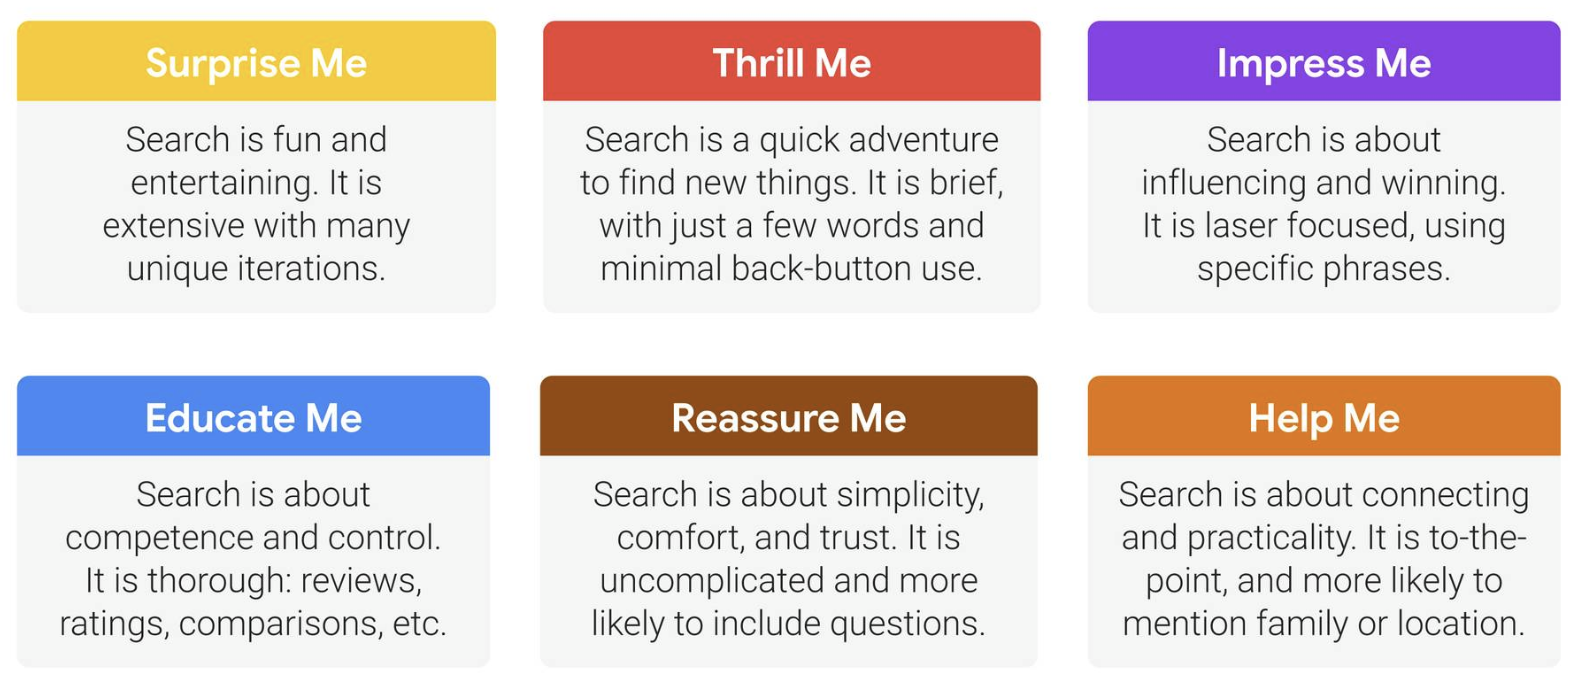 emotional needs of searchers.